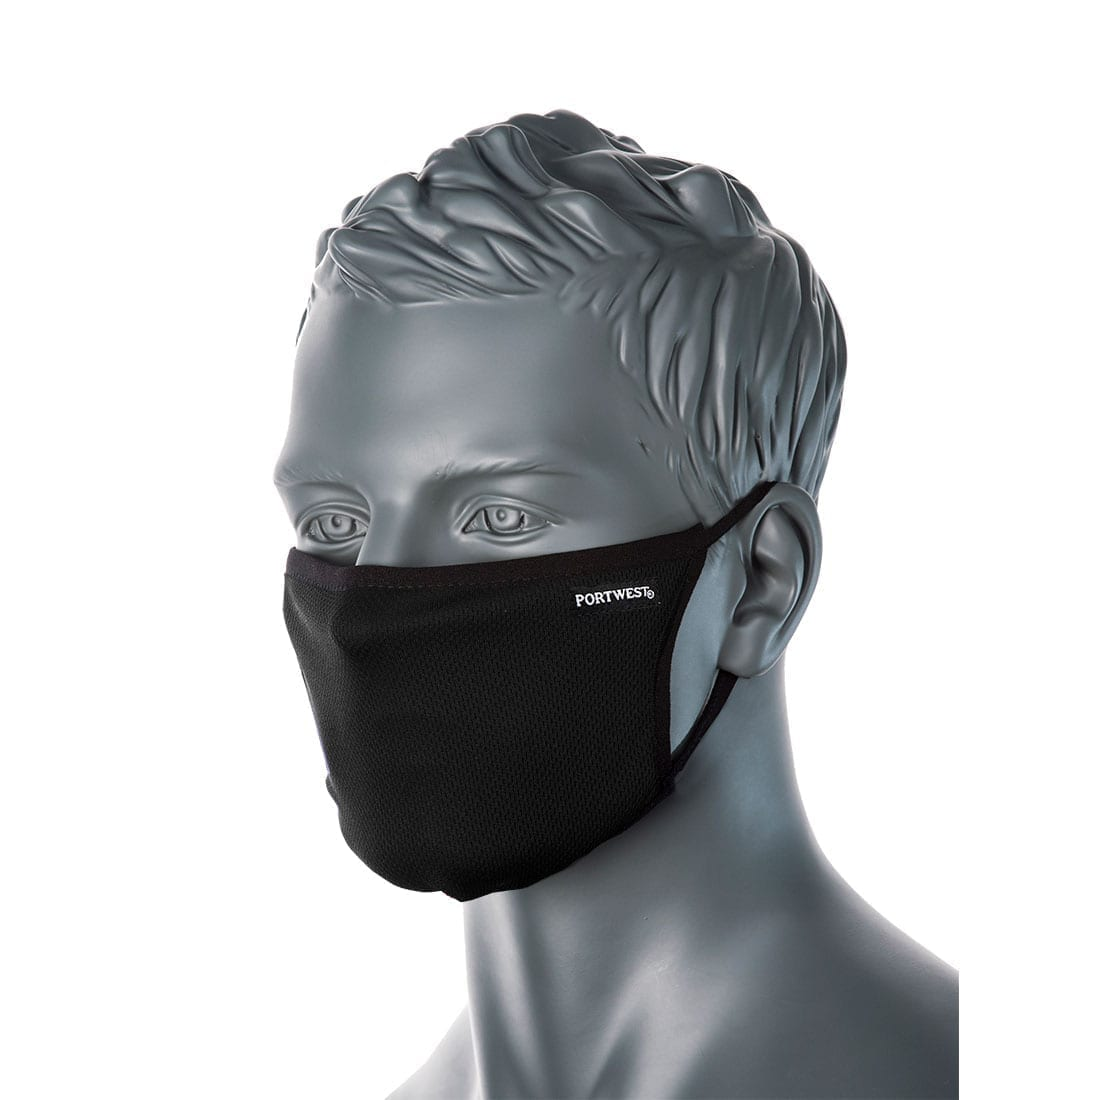 Black Portwest Reusable 3 Ply Mask. Box of 25 3-Ply Anti-Microbial 3PLY masks from Portwest is one of the best re-usable fabric masks in the market today. The black resuable masks has a anti-microbial finish, providing that extra protection whilst on the move. Furthermore, it kills 99.9% of bacteria and controls numerous odour-causing microorganisms that can accumulate in the fibres from skin contact and laundering.